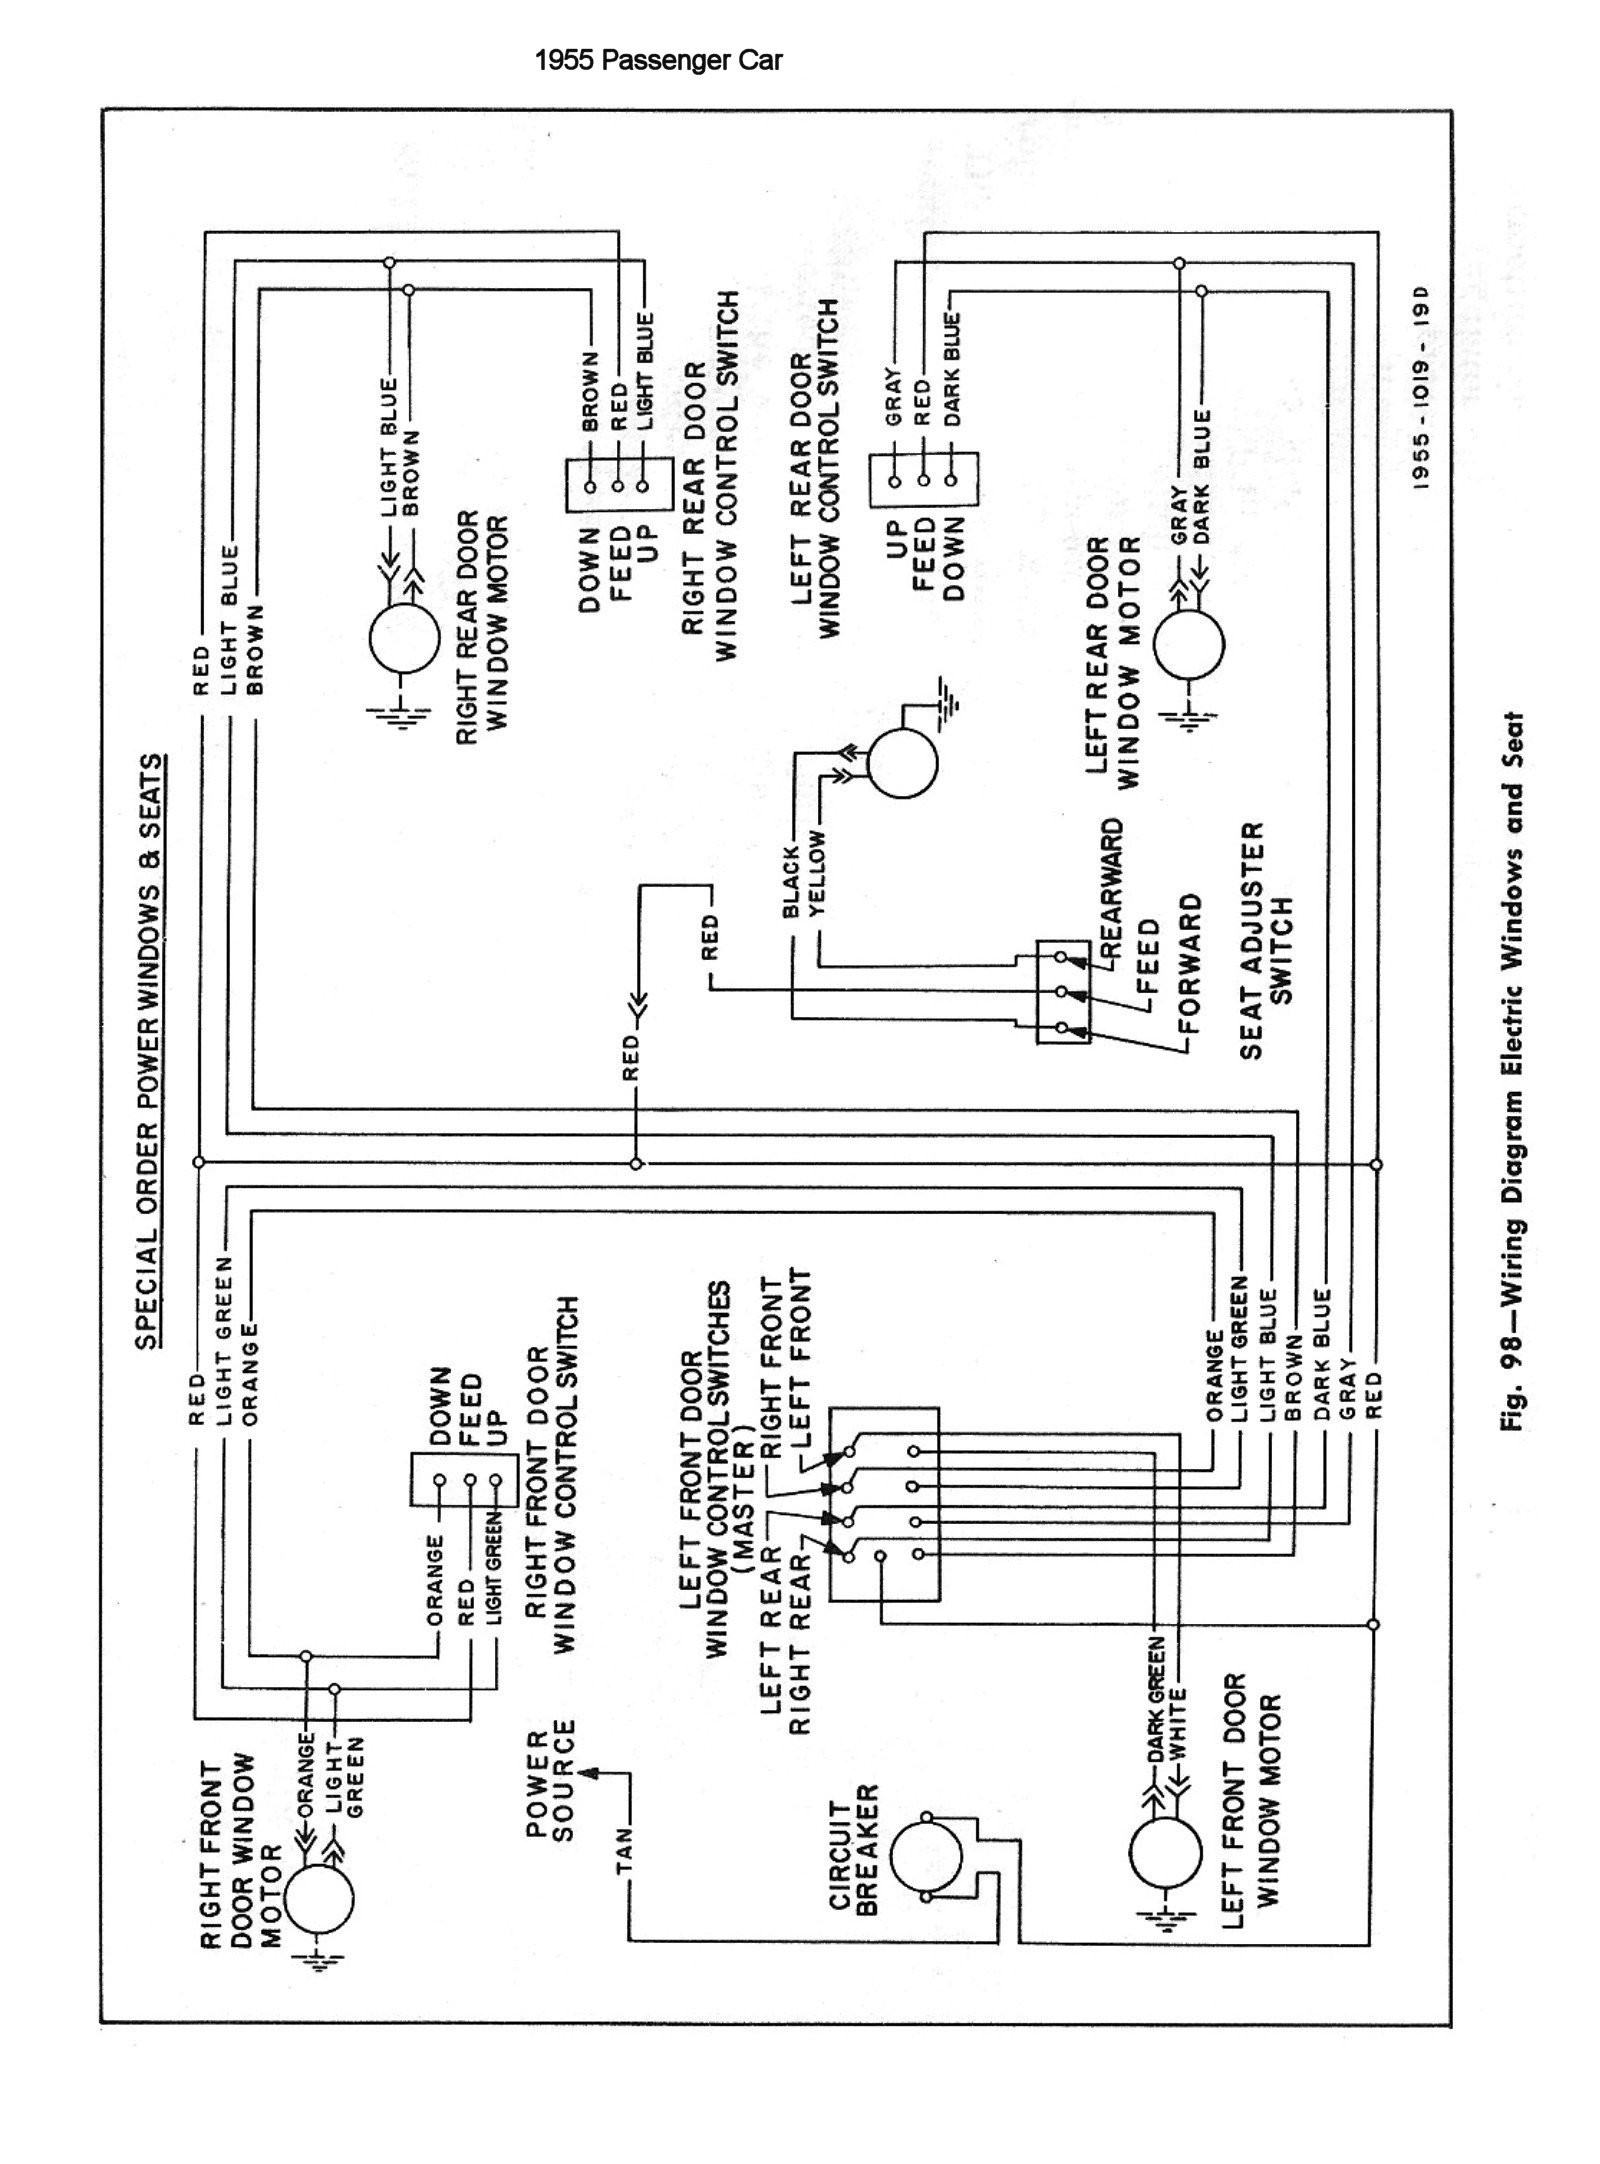 1986 Club Car Ds Schematic Wiring Diagram Chevy Wiring Diagrams Of 1986 Club Car Ds Schematic Wiring Diagram